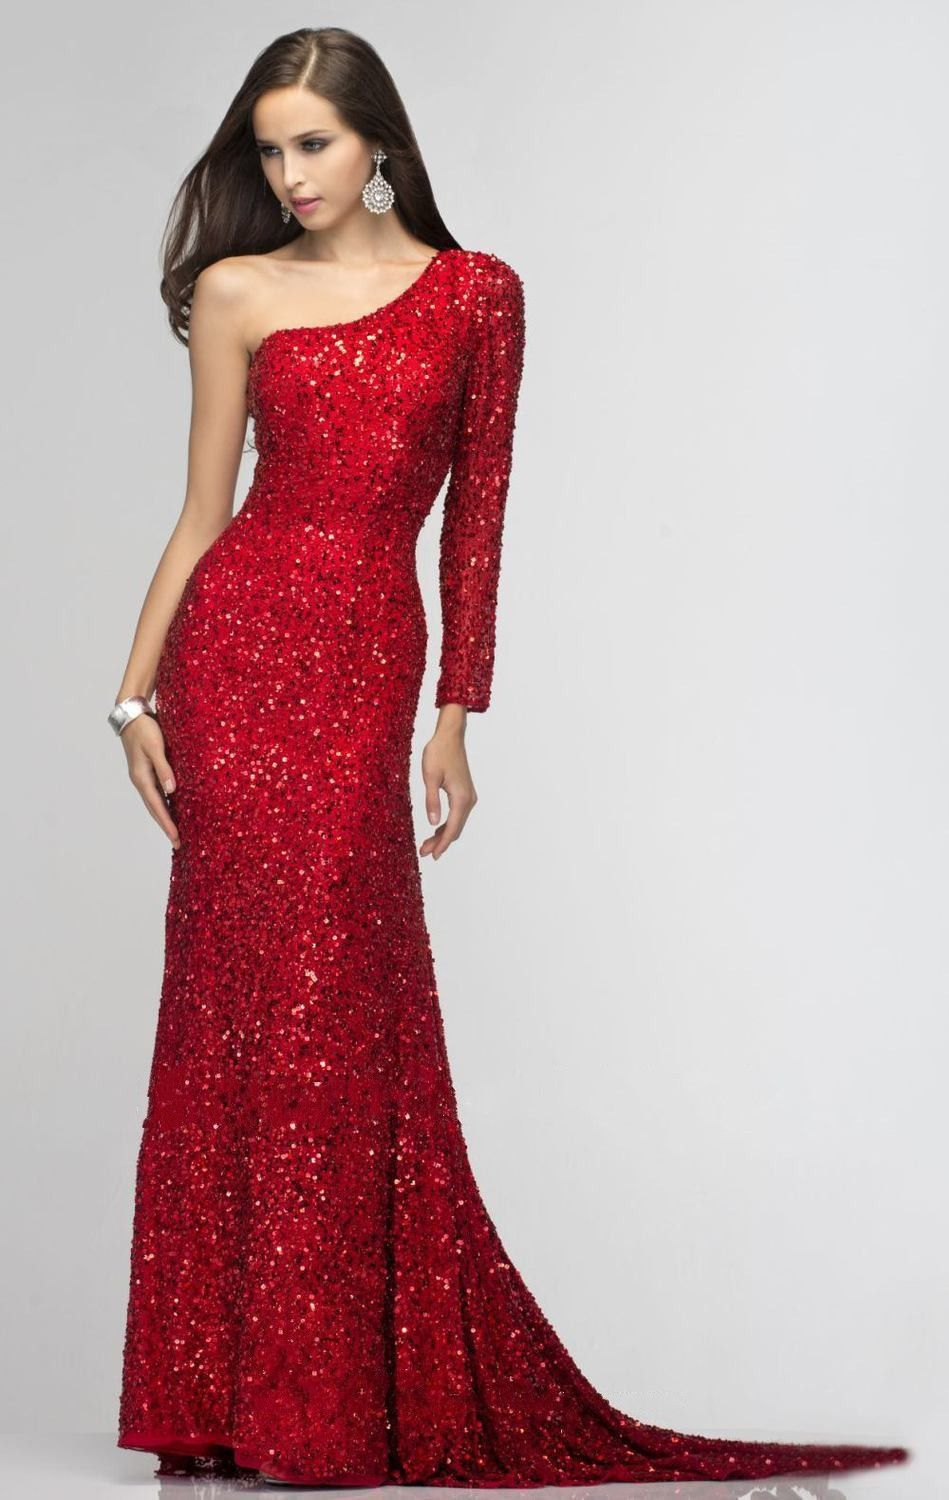 Gold silver red sequins beaded one shoulder long sleeve sexy sequins